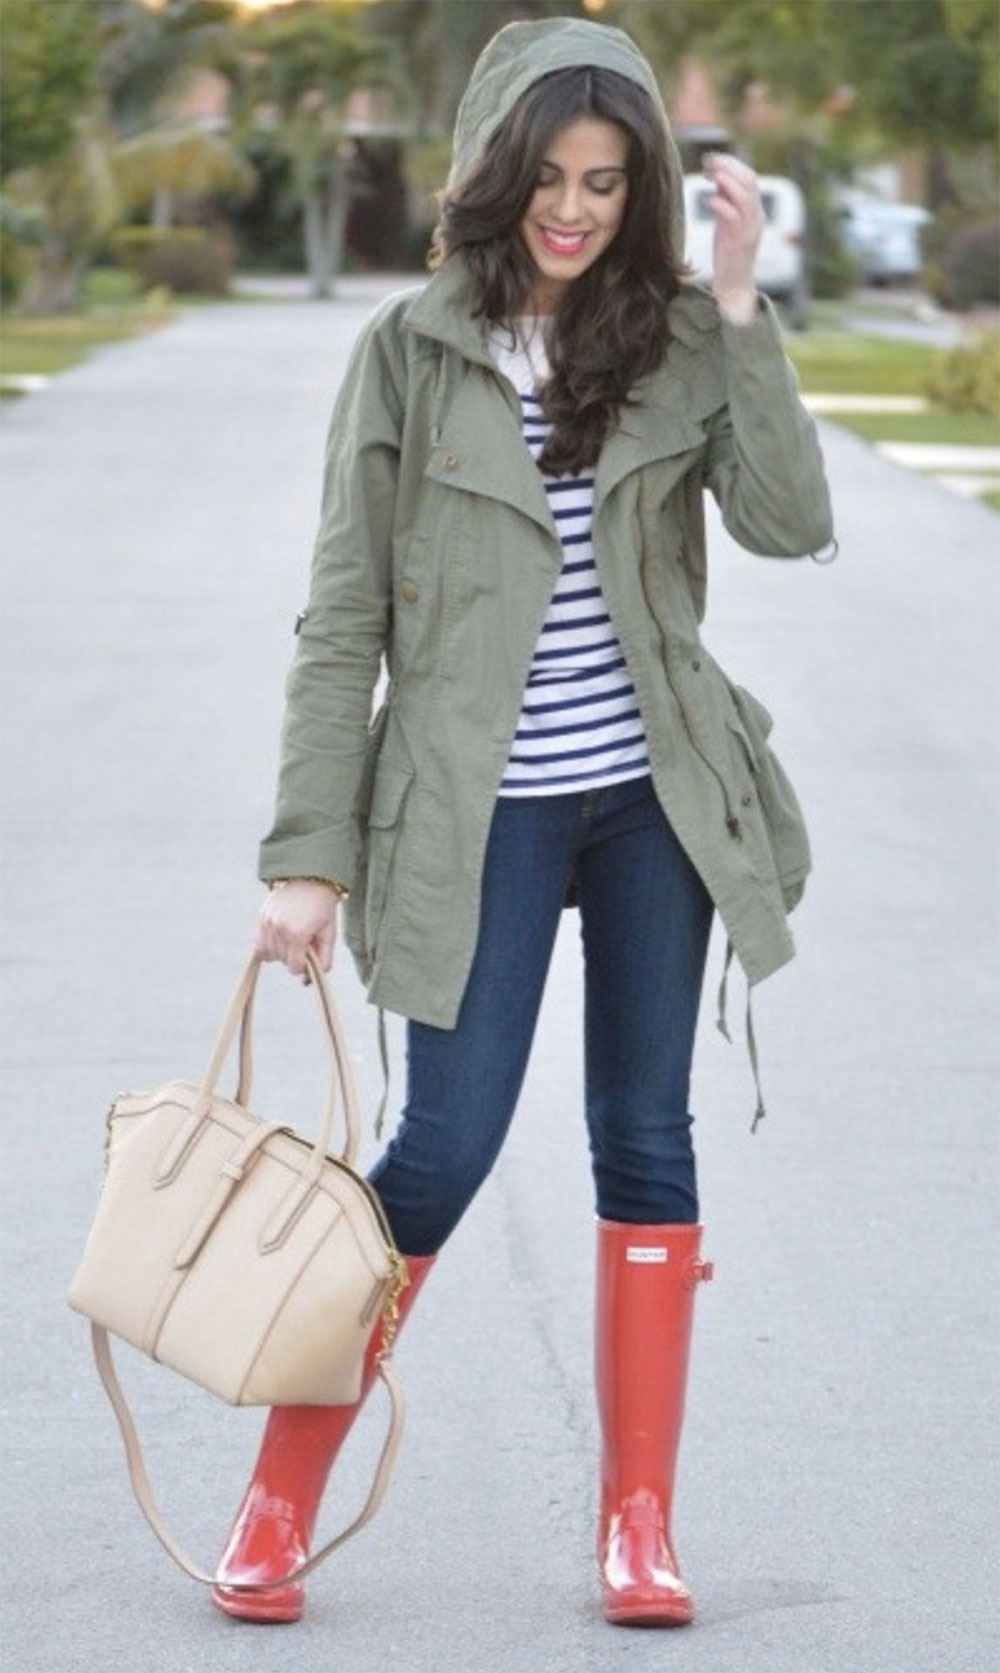 rainy day outfit ideas dash of panache